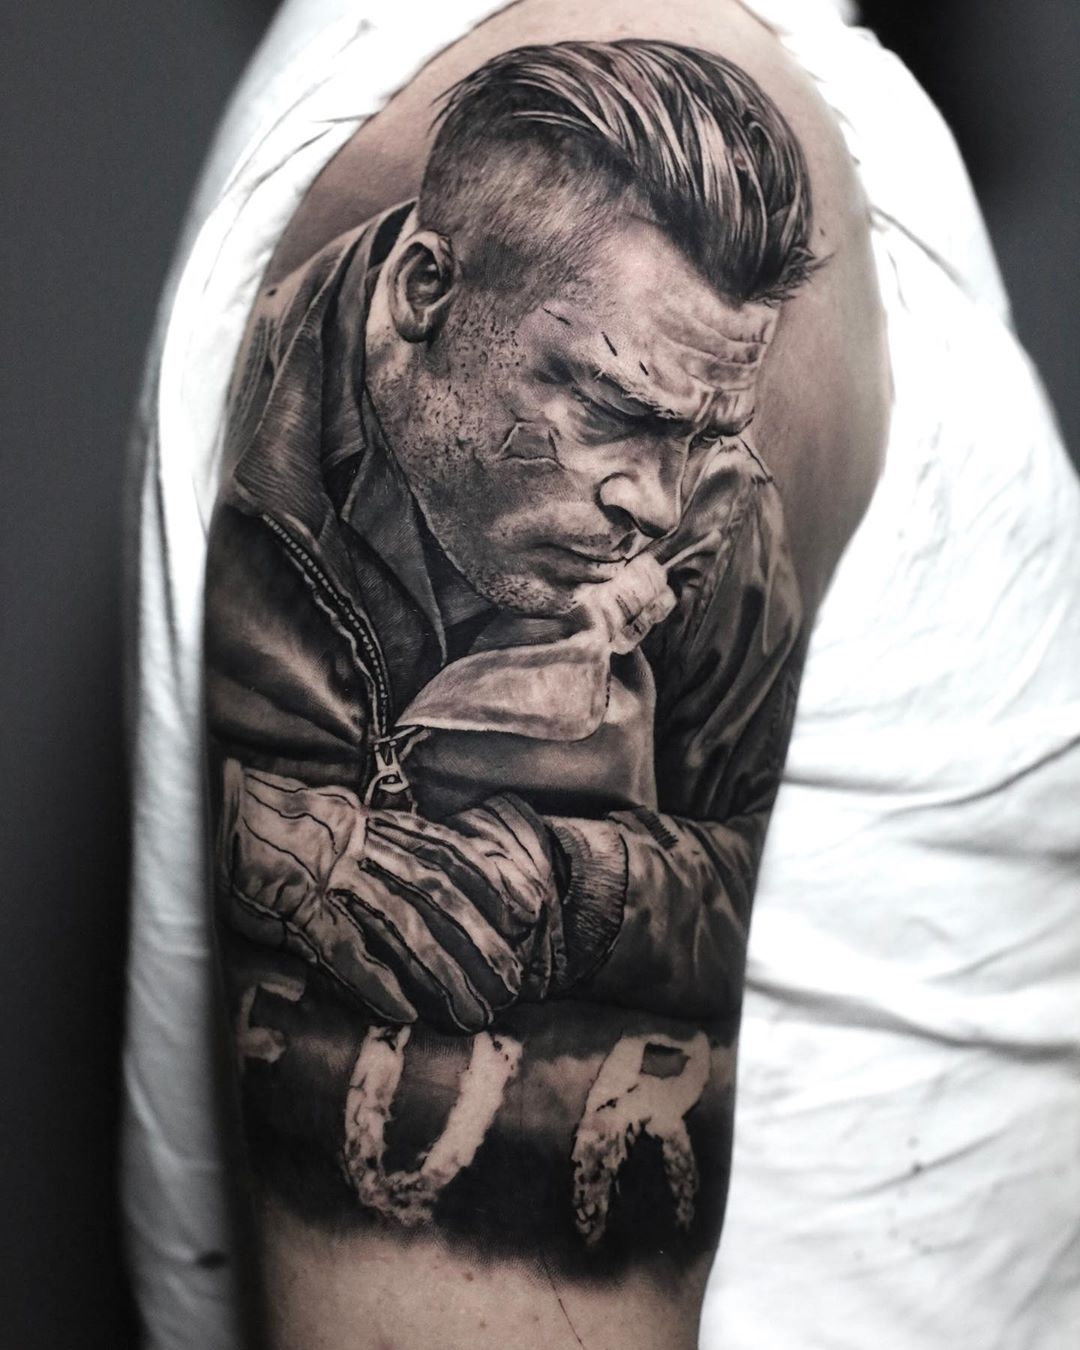 Brad Pitt tattoo from the movie Fury